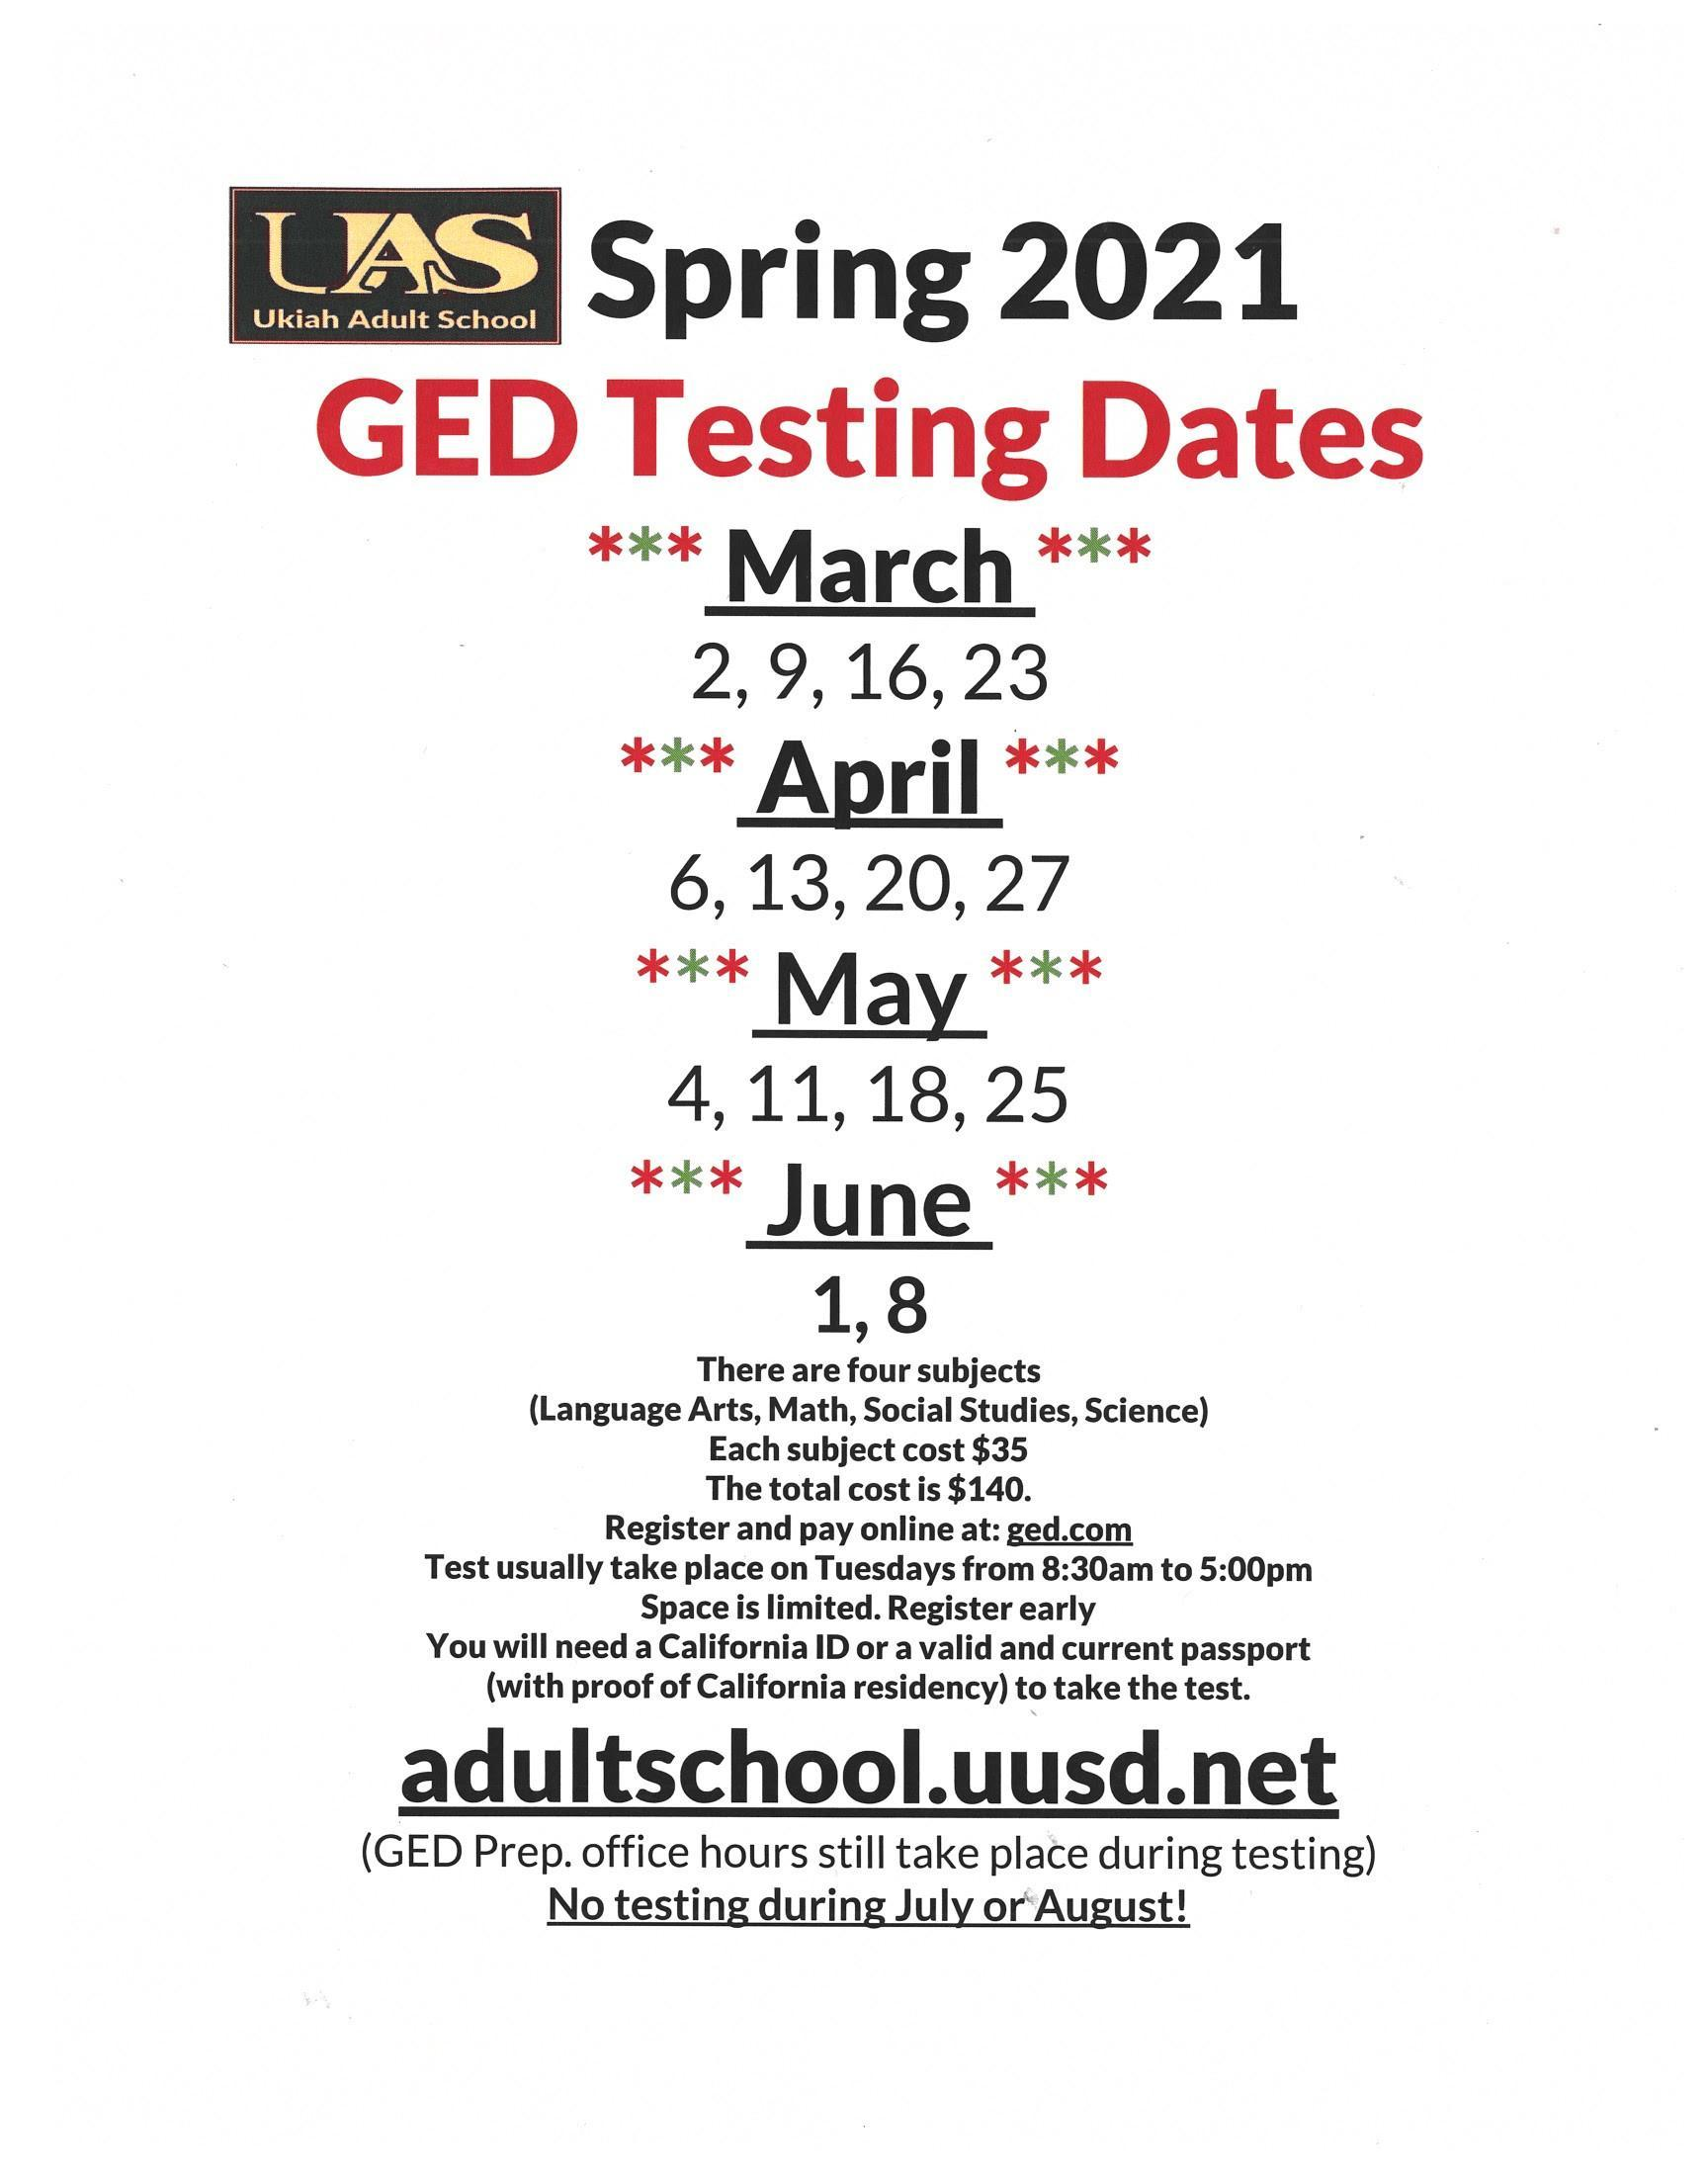 Spring 2021 GED test Dates Poster, March 2, 9, 16, 23, April 6,13, 20, 27, May 4, 11, 18, 25 June 1,8 no testing in July or August,